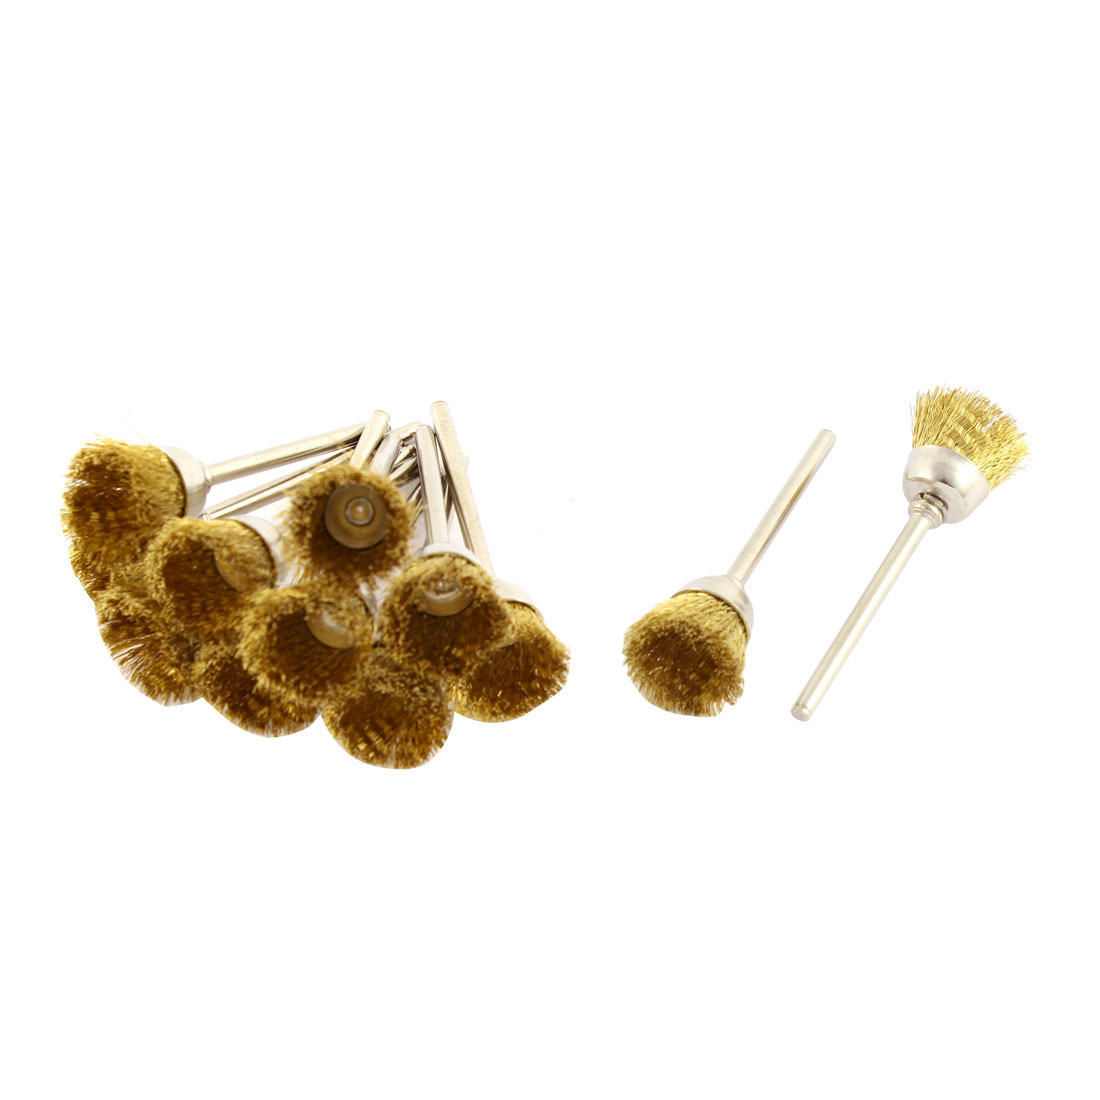 Gold Tone Brass Wire Polishing Brushes Jewelry Cleaning Buffing Tools 12pcs